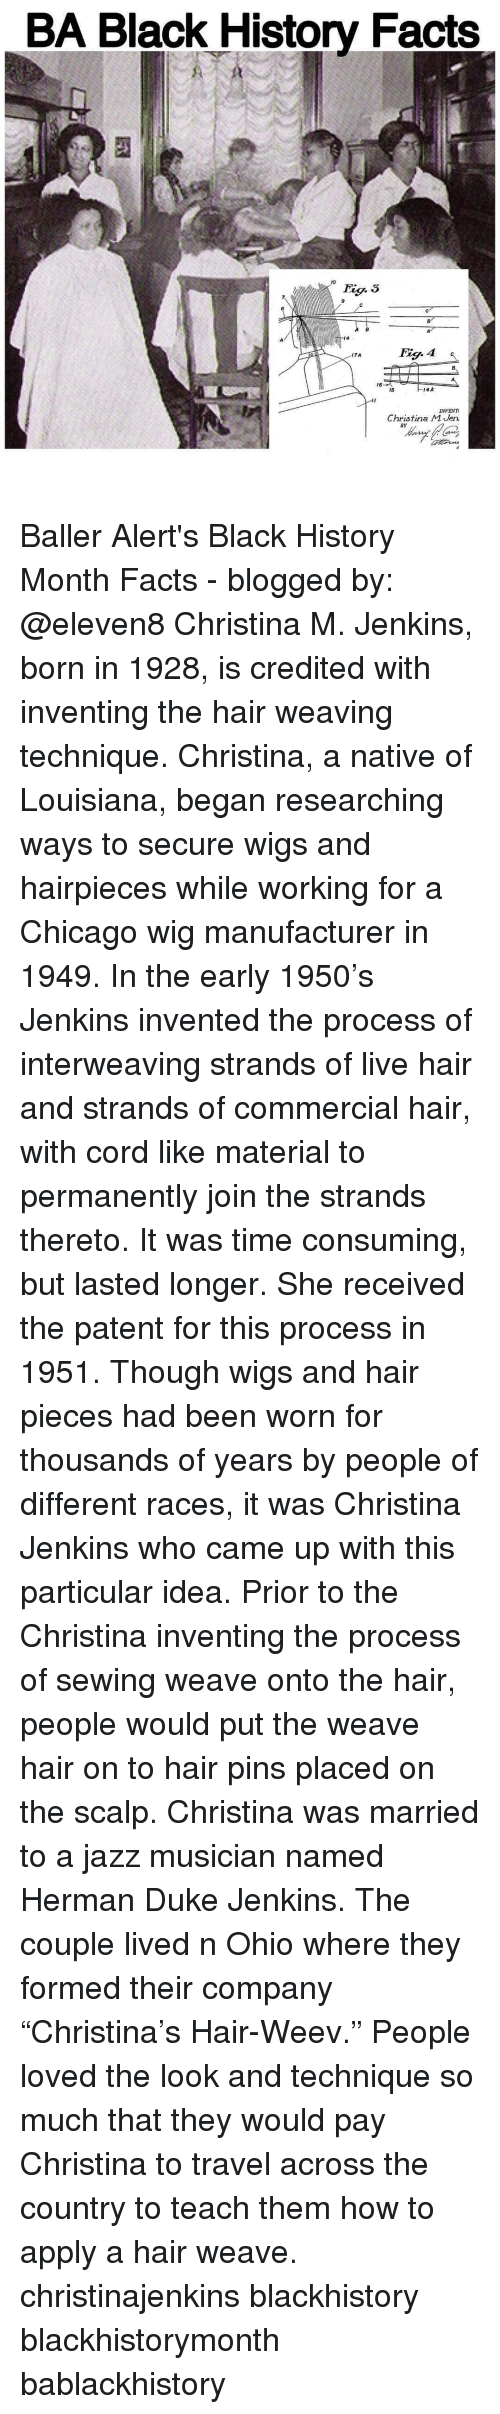 """consumate: BA Black History Facts  MO  4A  15  INVENT  Christina M Jen.  BY Baller Alert's Black History Month Facts - blogged by: @eleven8 Christina M. Jenkins, born in 1928, is credited with inventing the hair weaving technique. Christina, a native of Louisiana, began researching ways to secure wigs and hairpieces while working for a Chicago wig manufacturer in 1949. In the early 1950's Jenkins invented the process of interweaving strands of live hair and strands of commercial hair, with cord like material to permanently join the strands thereto. It was time consuming, but lasted longer. She received the patent for this process in 1951. Though wigs and hair pieces had been worn for thousands of years by people of different races, it was Christina Jenkins who came up with this particular idea. Prior to the Christina inventing the process of sewing weave onto the hair, people would put the weave hair on to hair pins placed on the scalp. Christina was married to a jazz musician named Herman Duke Jenkins. The couple lived n Ohio where they formed their company """"Christina's Hair-Weev."""" People loved the look and technique so much that they would pay Christina to travel across the country to teach them how to apply a hair weave. christinajenkins blackhistory blackhistorymonth bablackhistory"""